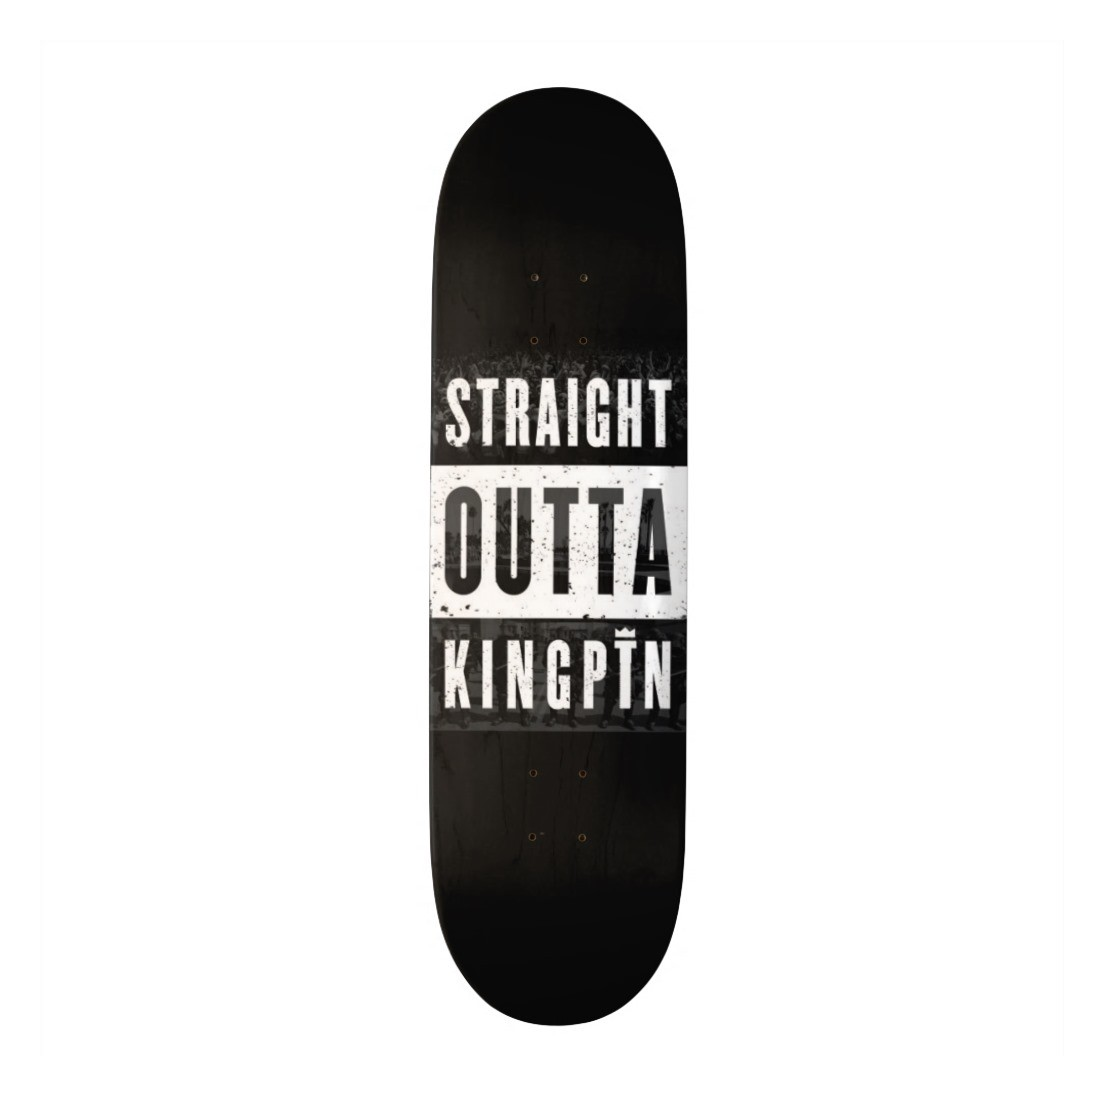 Kingpin Skate Supply Deck Straight Outta FREE GRIP FREE POST